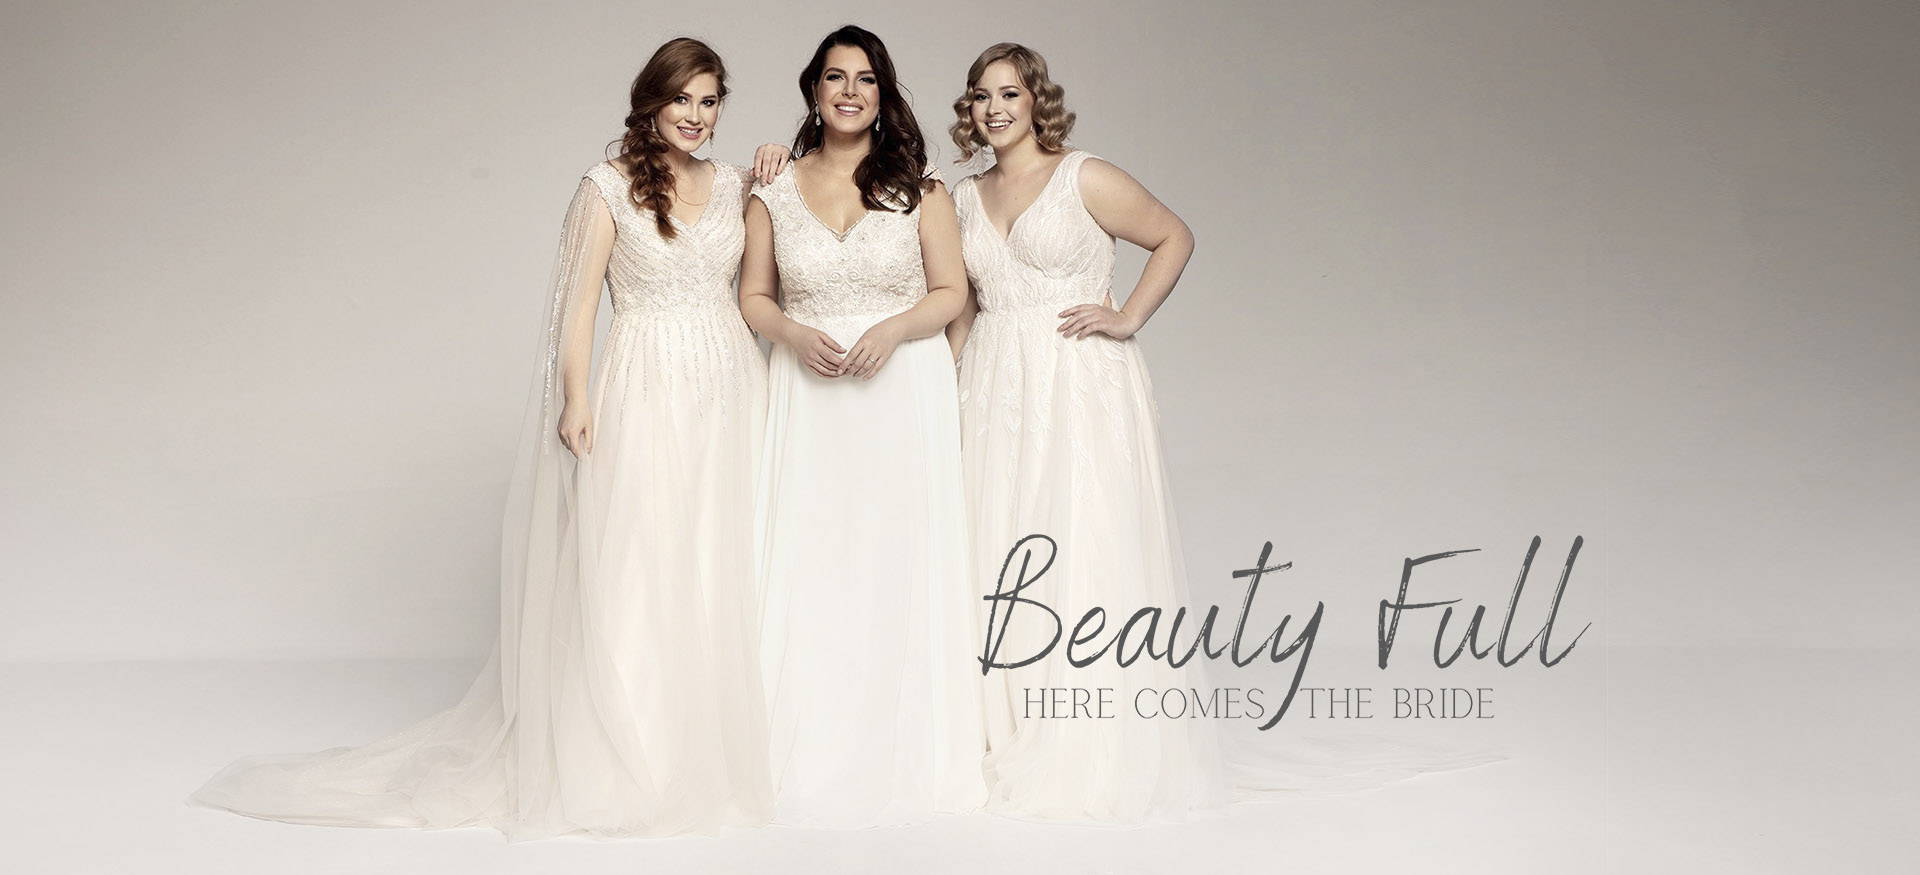 Beauty Full plus size - Sprawdź